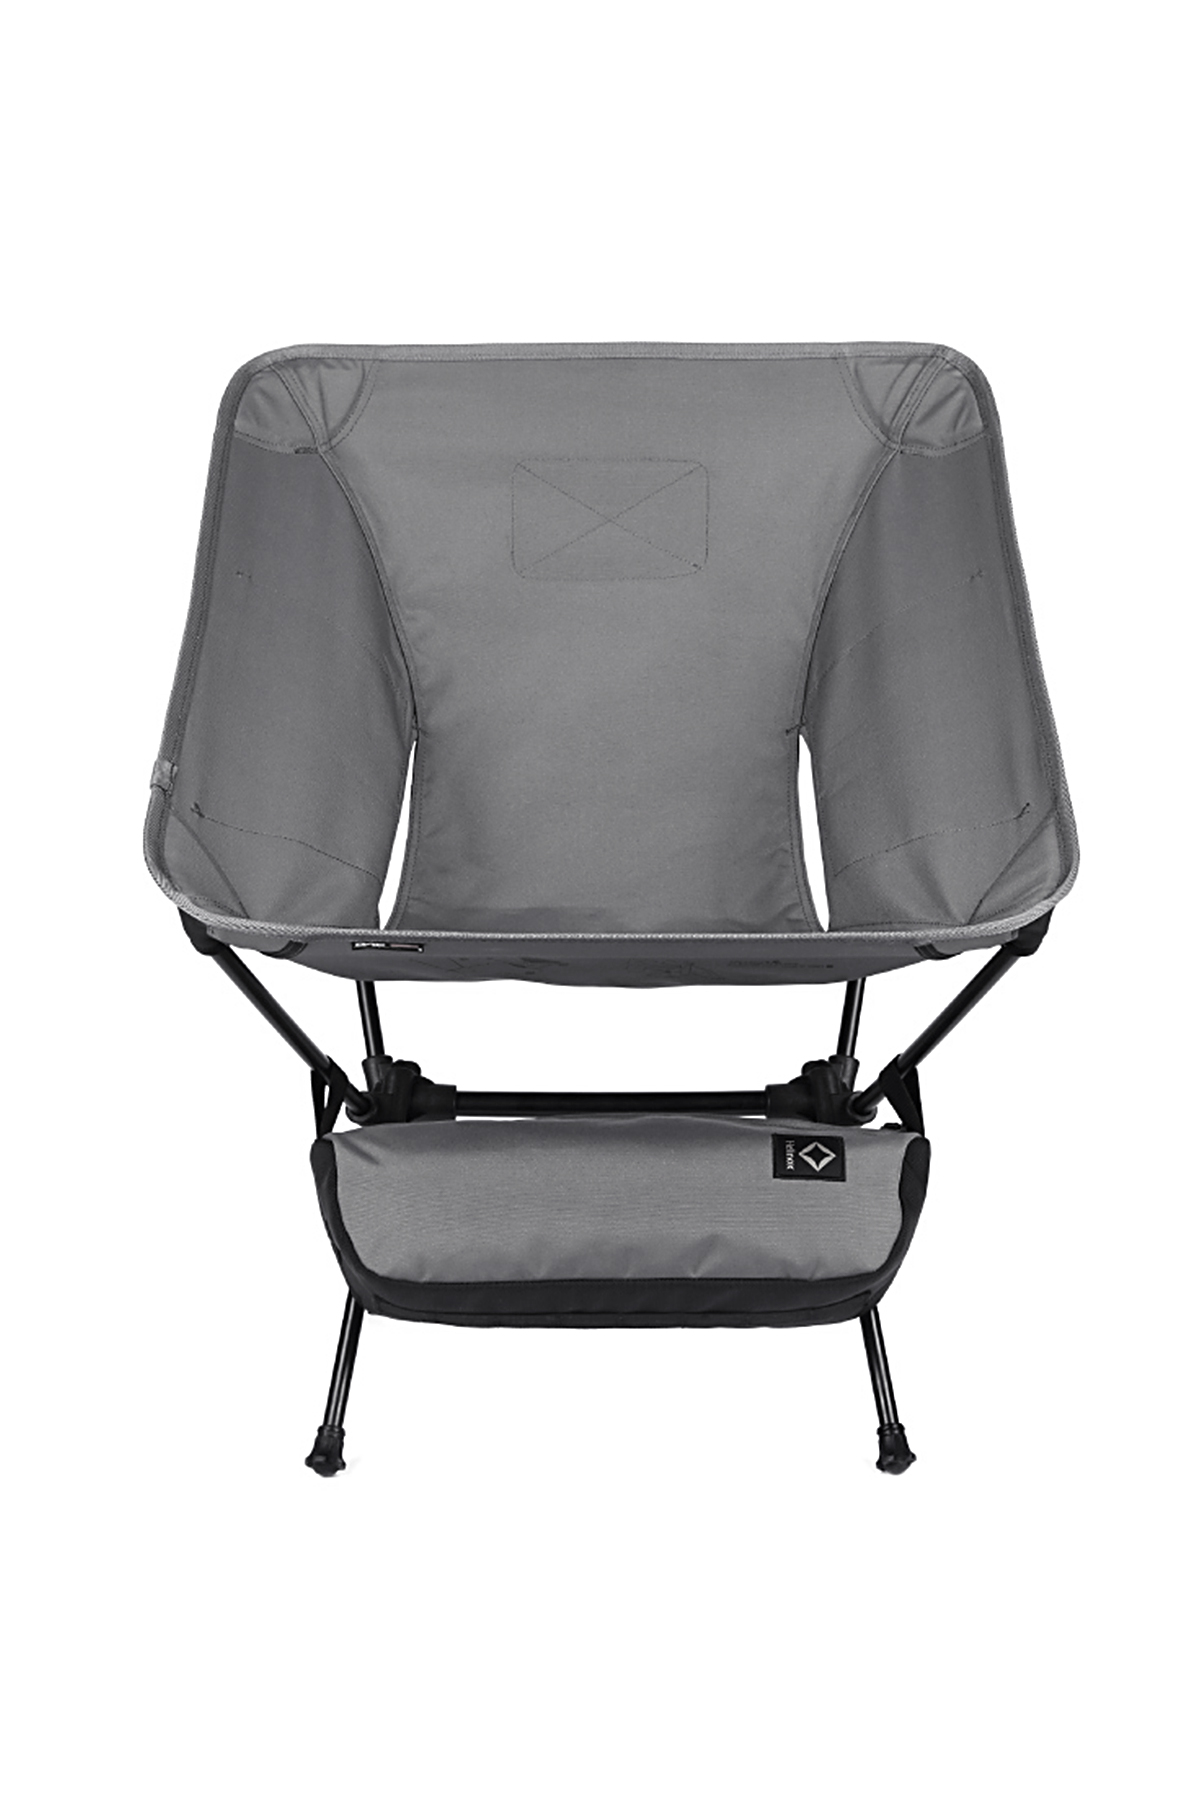 Helinox : Tactical Chair (Foliage Green)